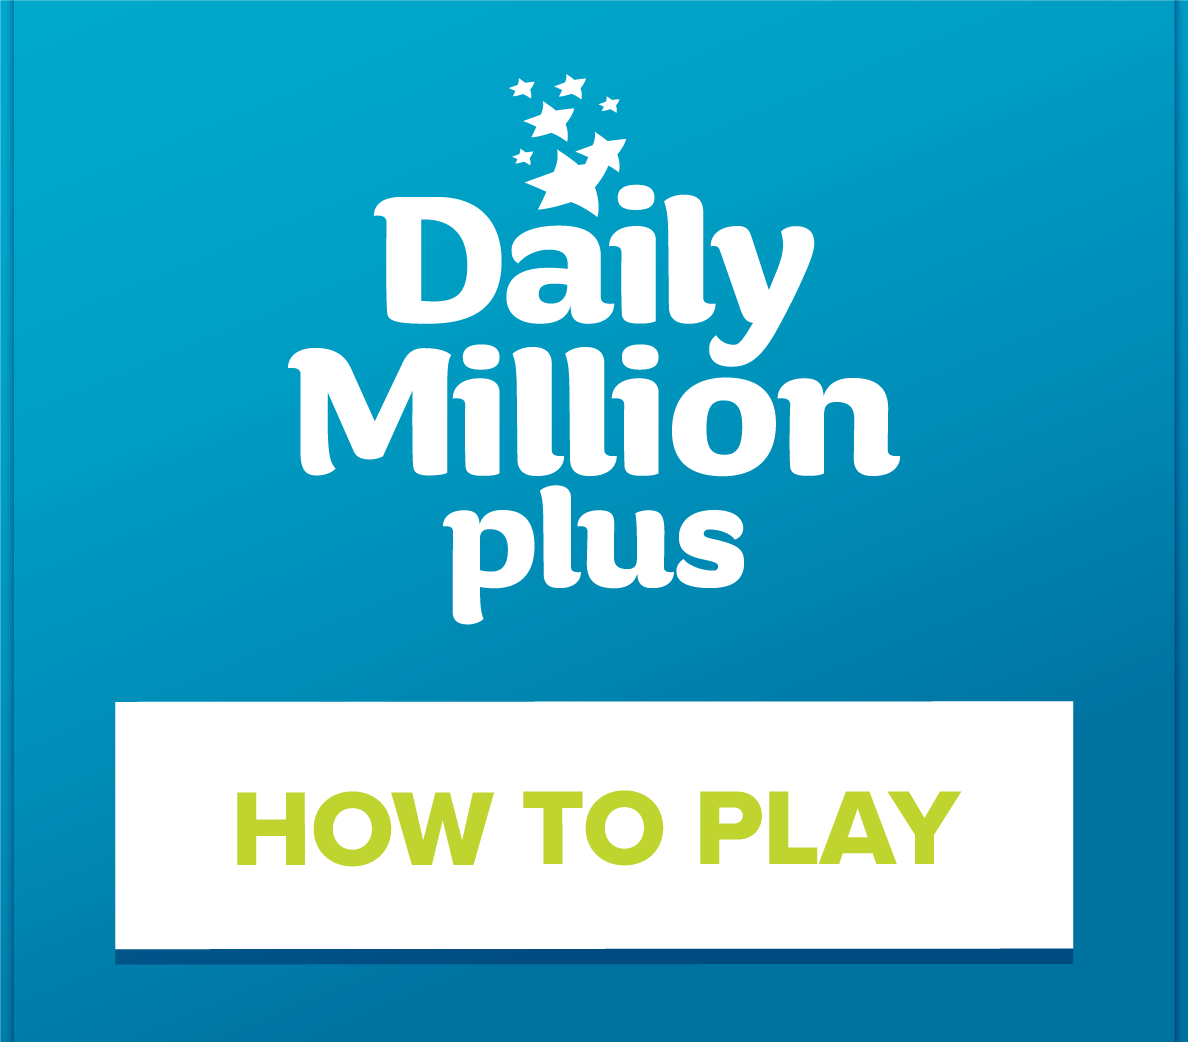 How to Play Daily Million Plus